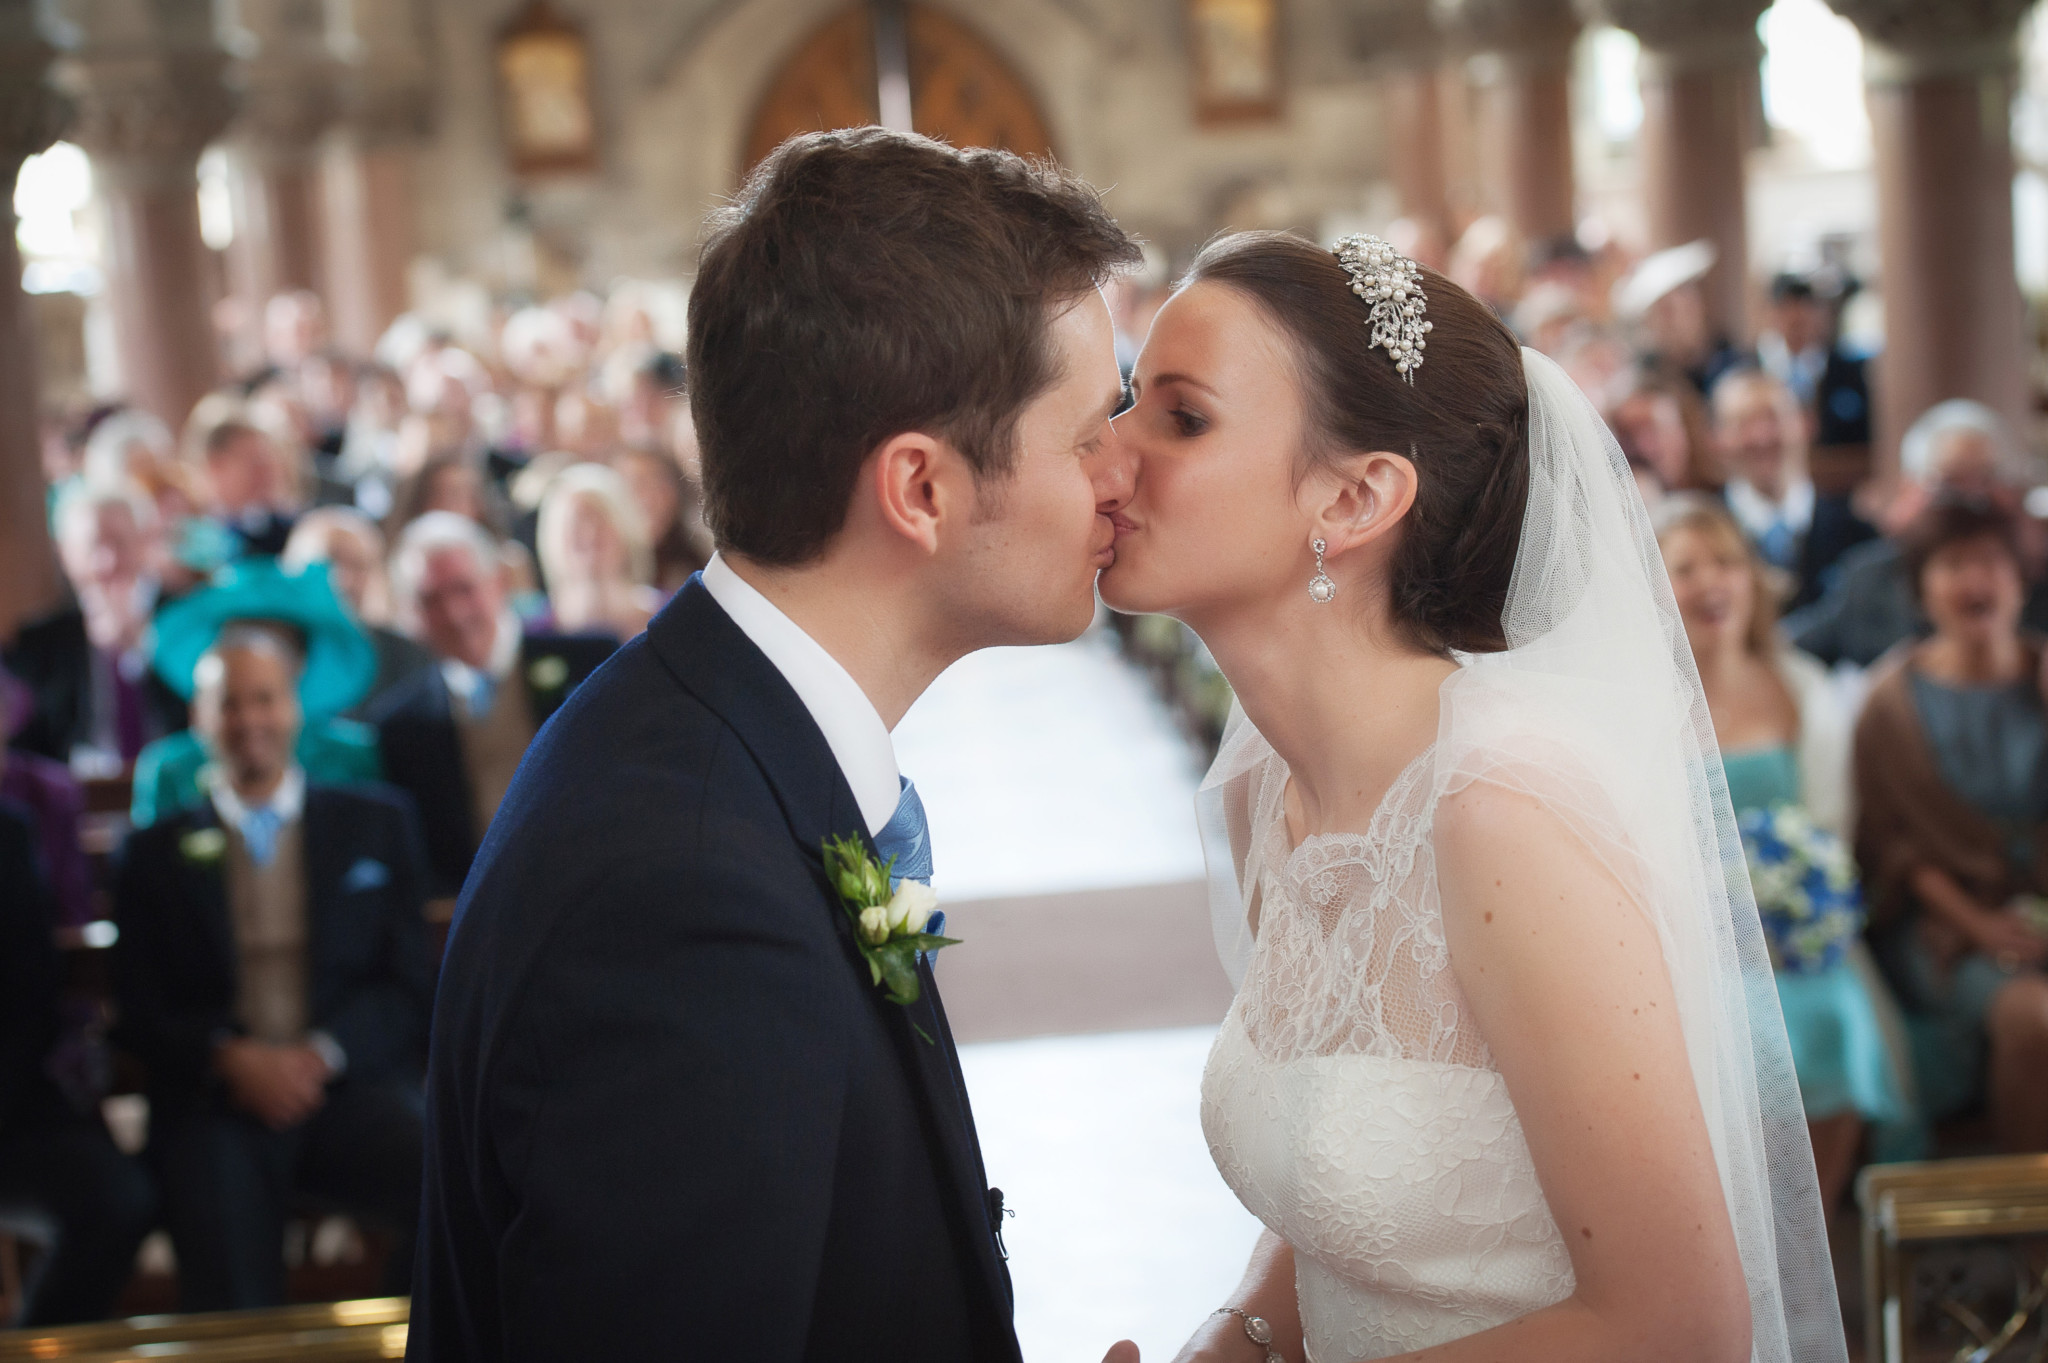 Wedding photograph of the couple kissing in church